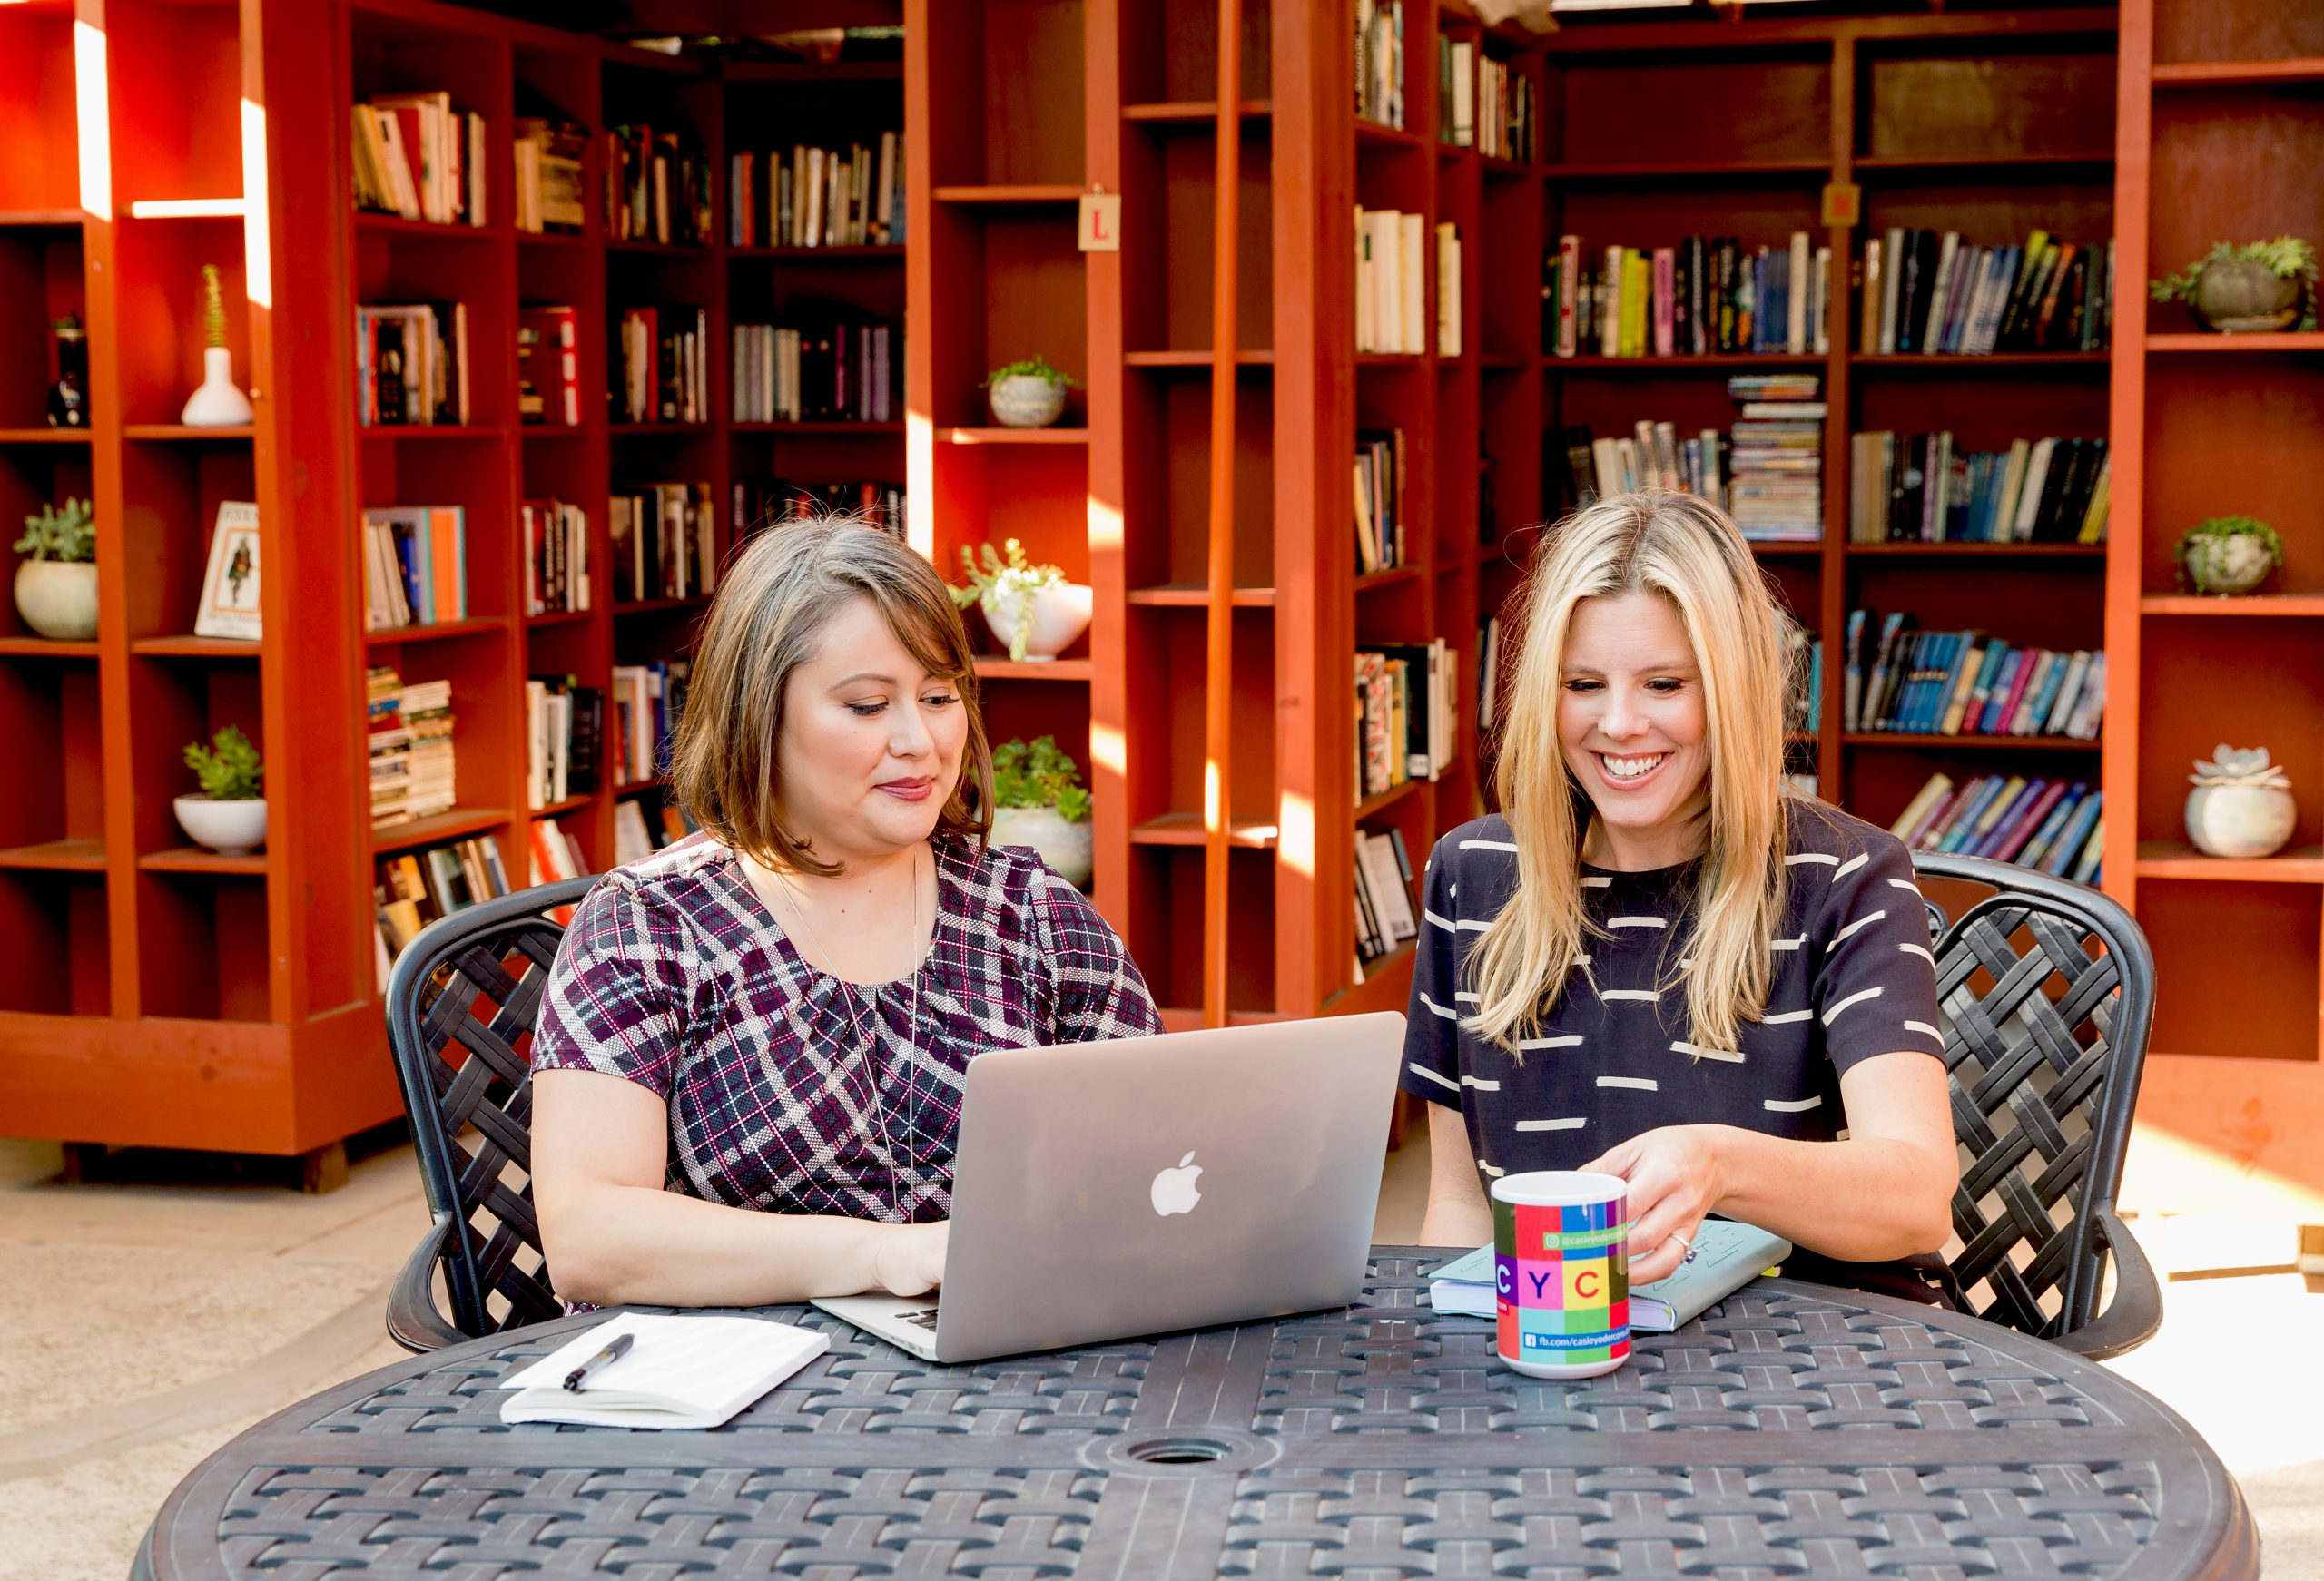 Casie Yoder Consulting Header Image with Casie Yoder and Liz Ireland sitting at a table